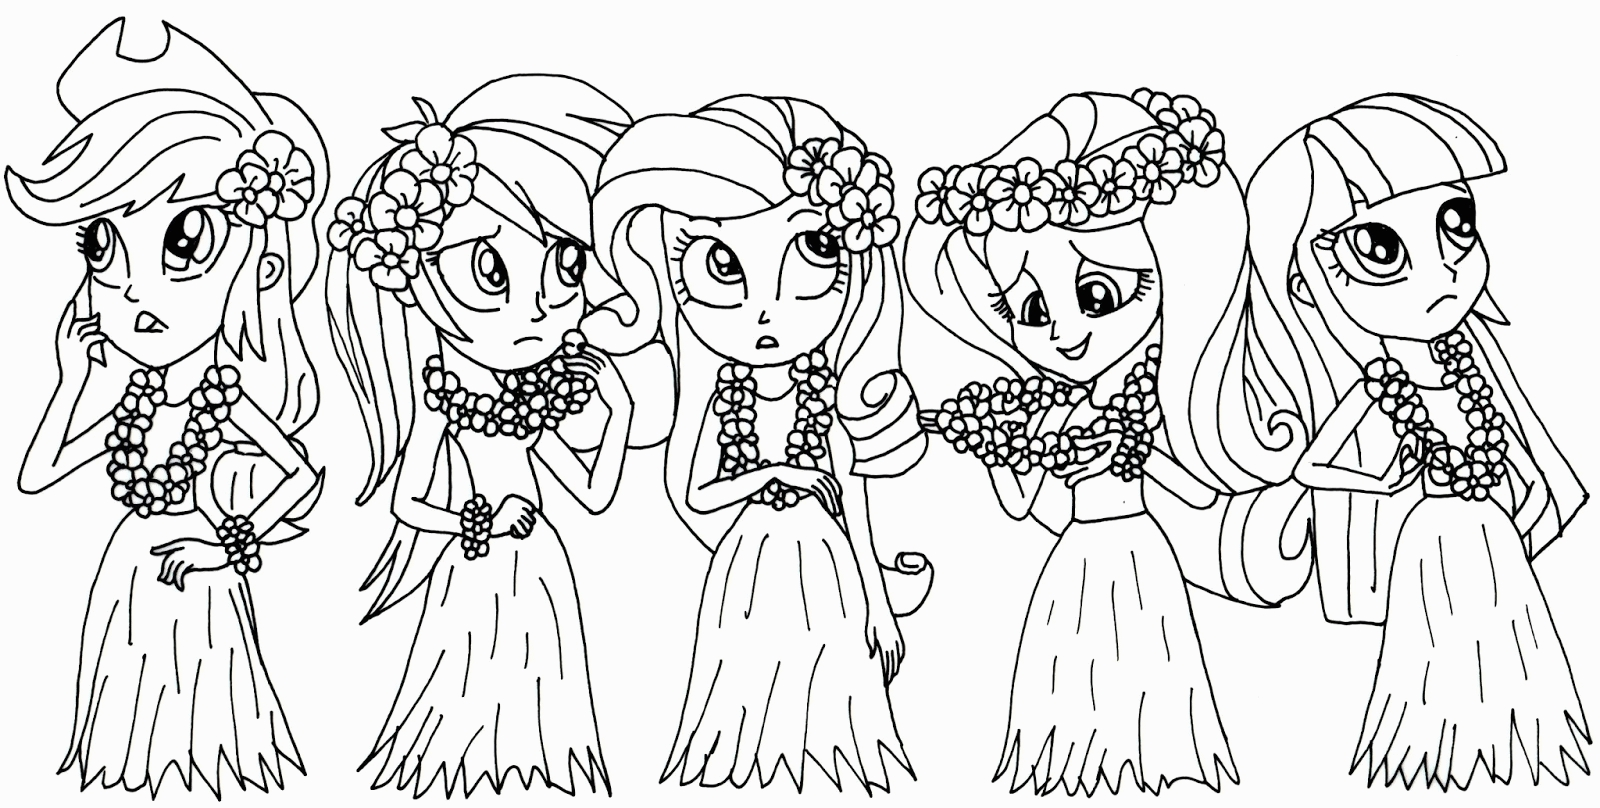 21 Free Printable My Little Pony Coloring Pages Images | FREE ...